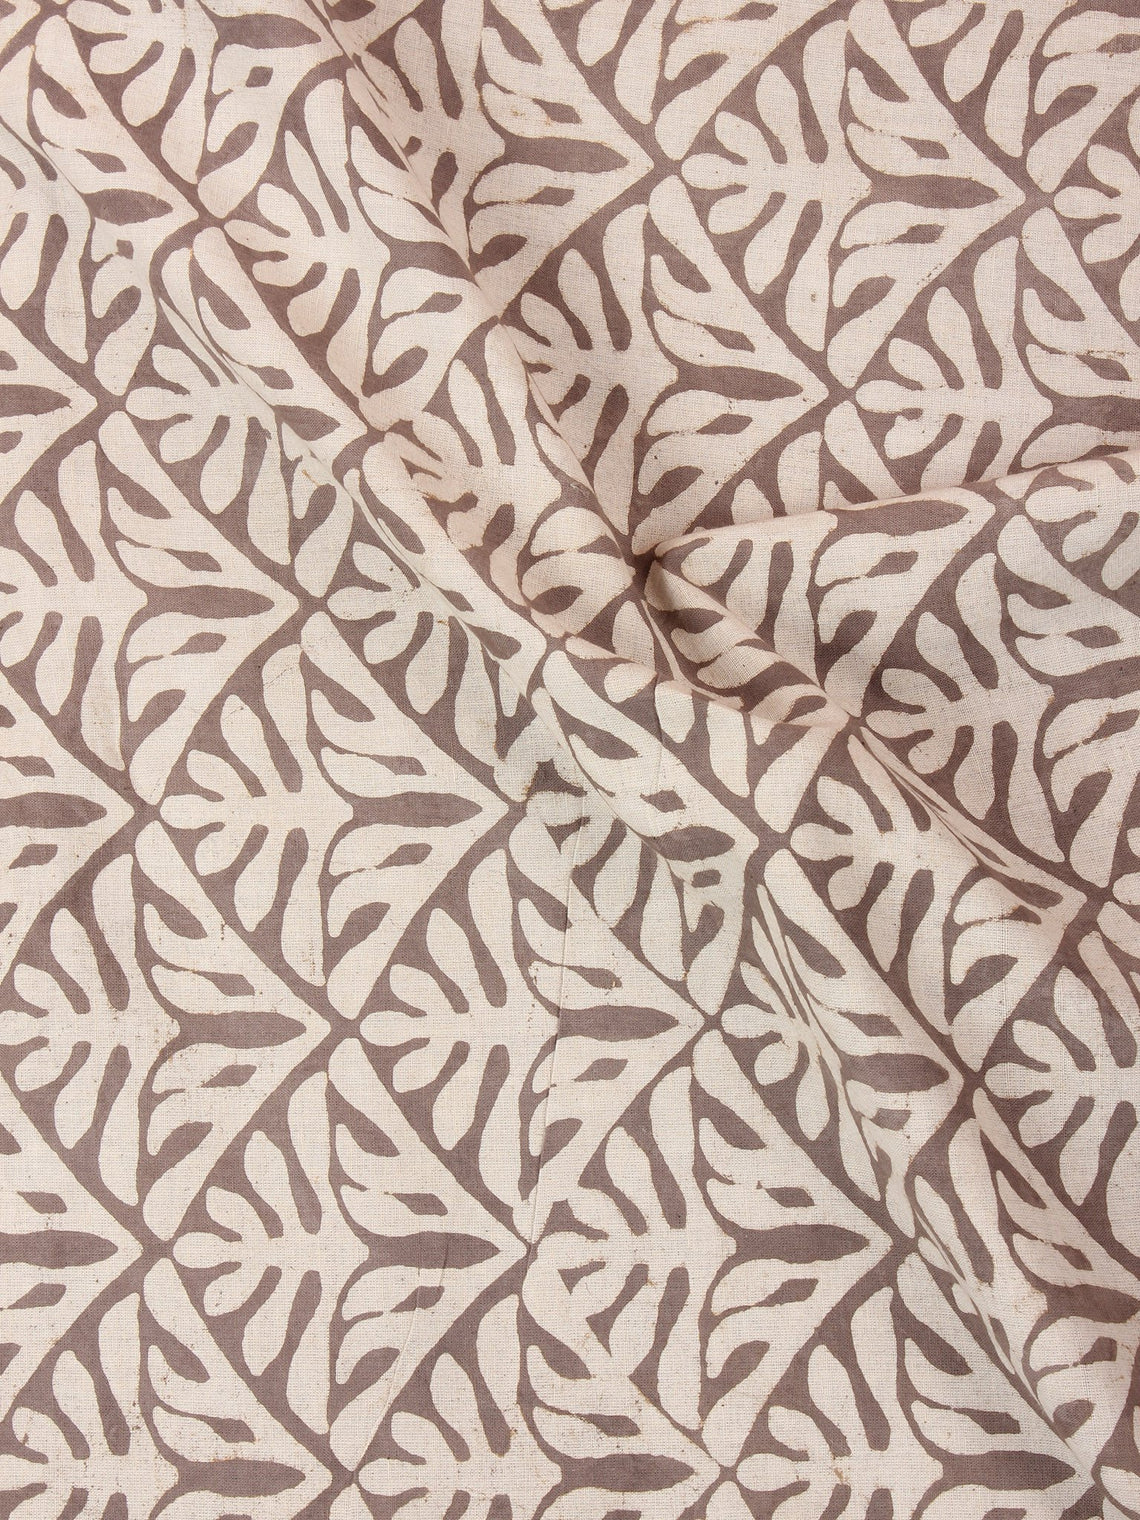 Beige Brown Natural Dyed Hand Block Printed Cotton Fabric Per Meter - F0916238